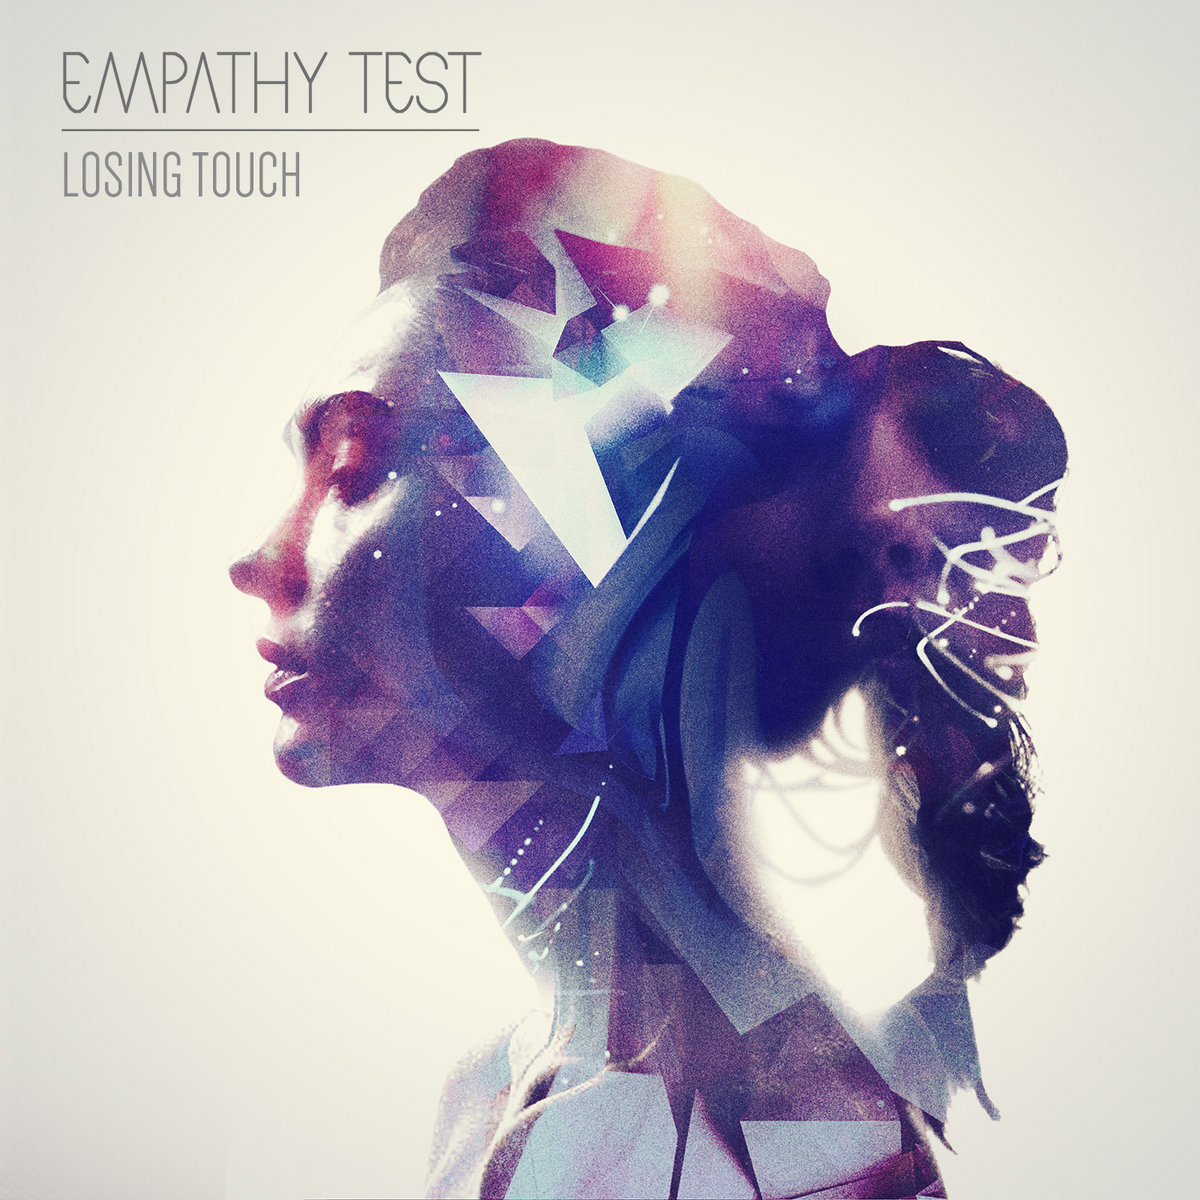 Empathy Test - Losing Touch (Expanded) (2020) [FLAC] Download